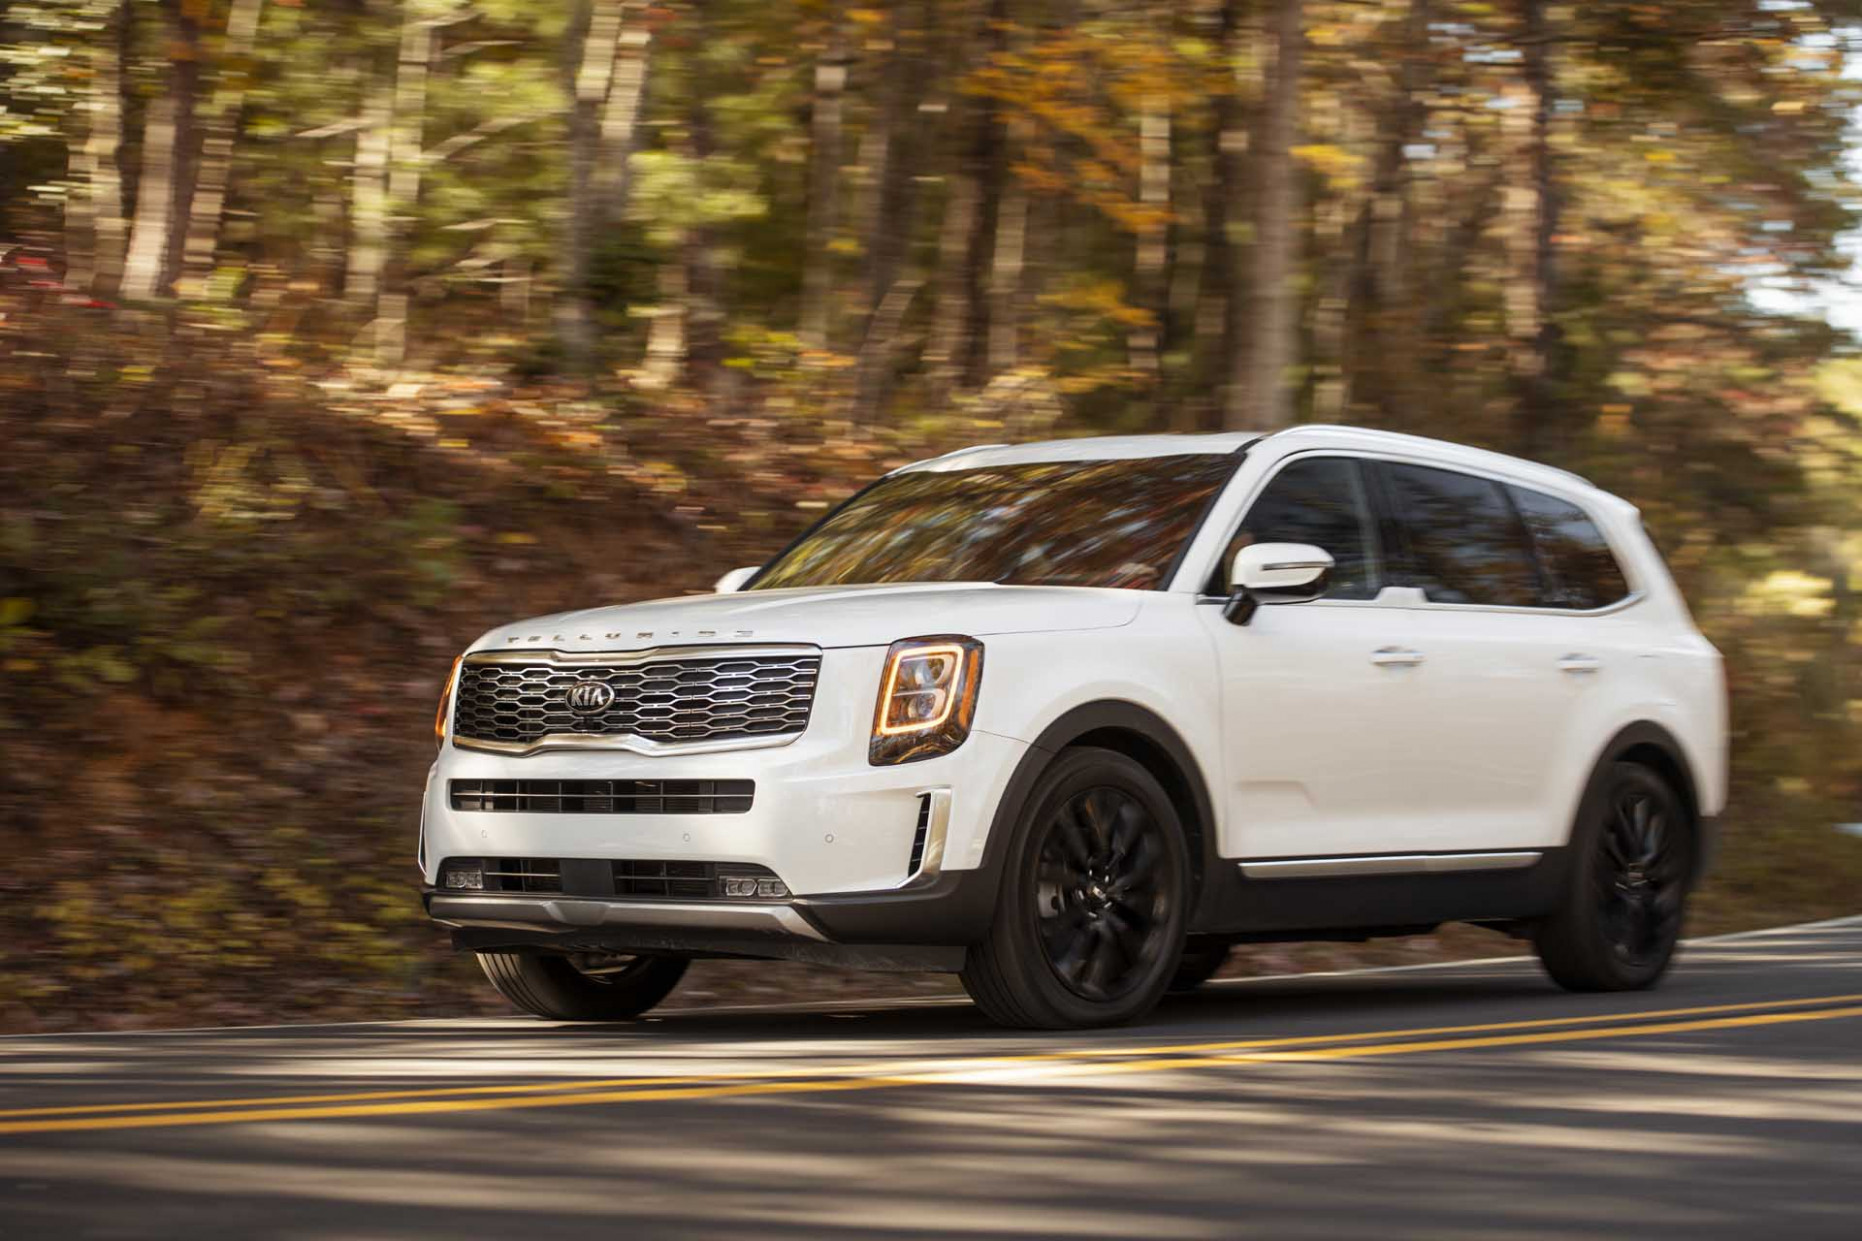 8 Kia Telluride Review, Ratings, Specs, Prices, and Photos ..